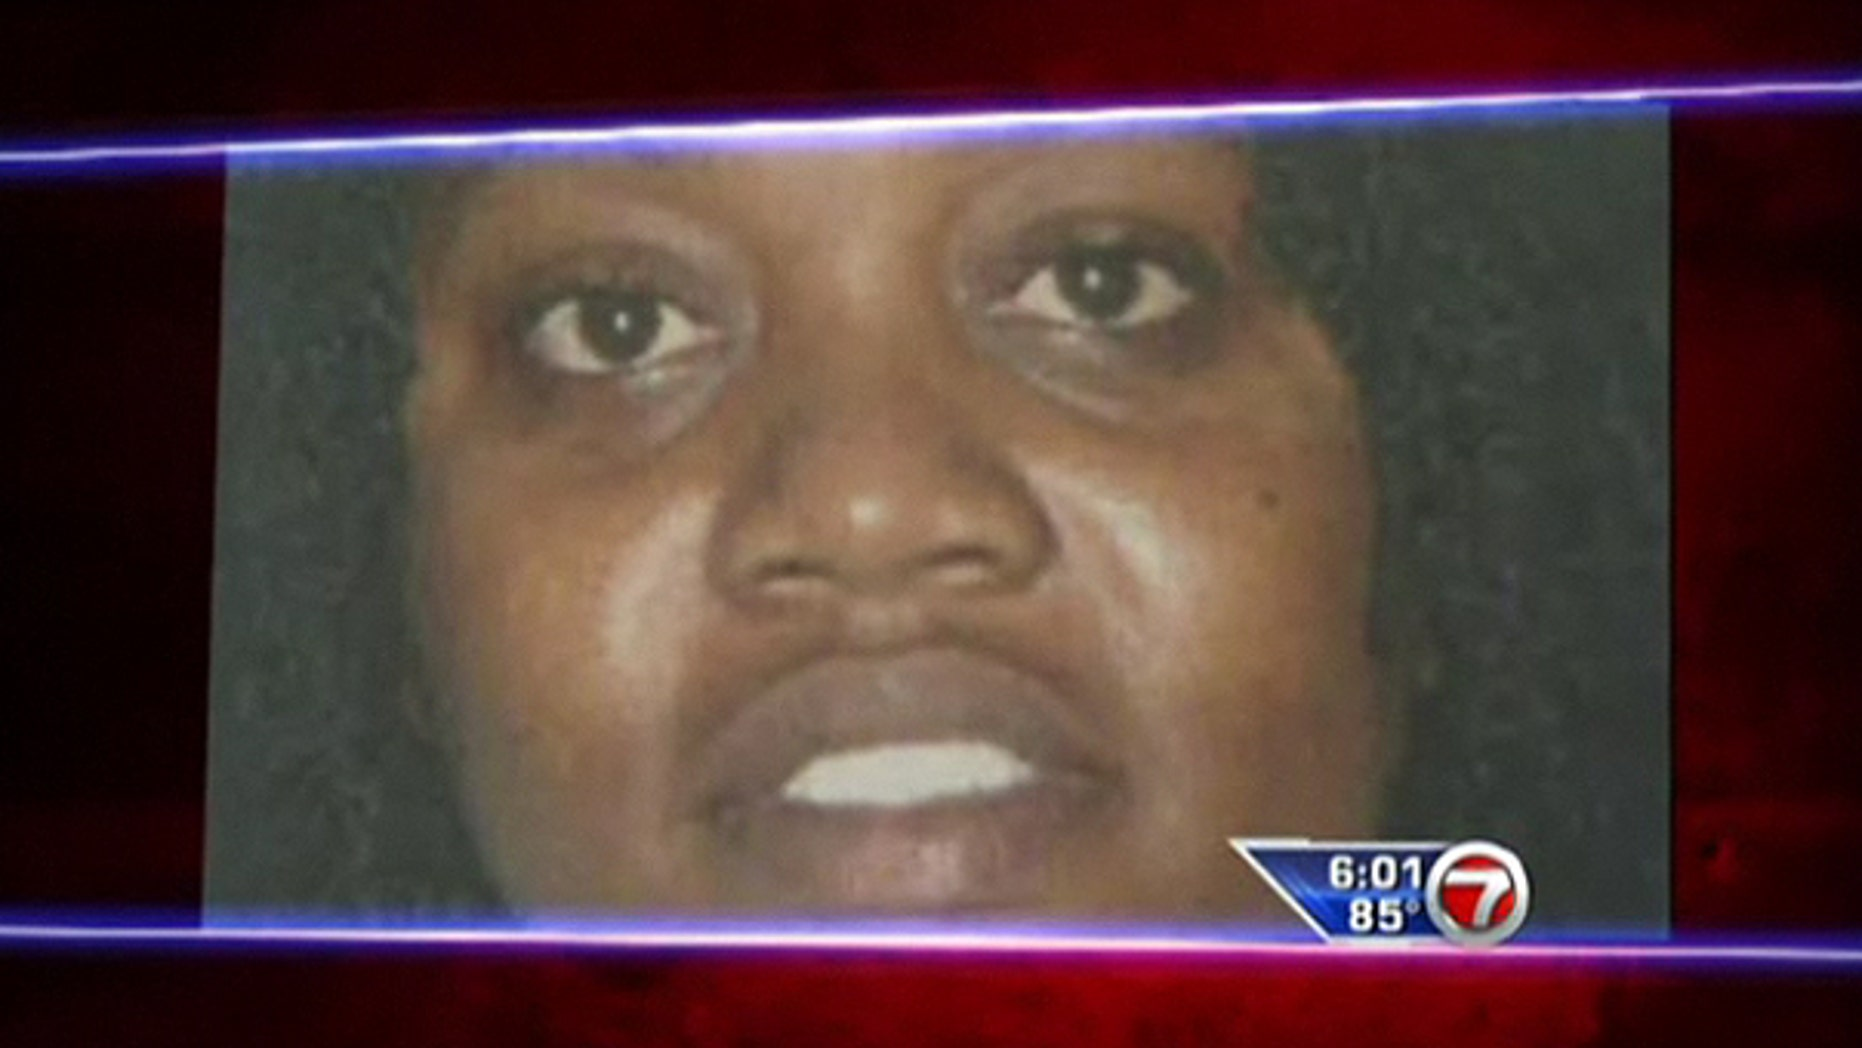 This screengrab from Miami's wsvn.com shows 33-year-old Julia Bennet.